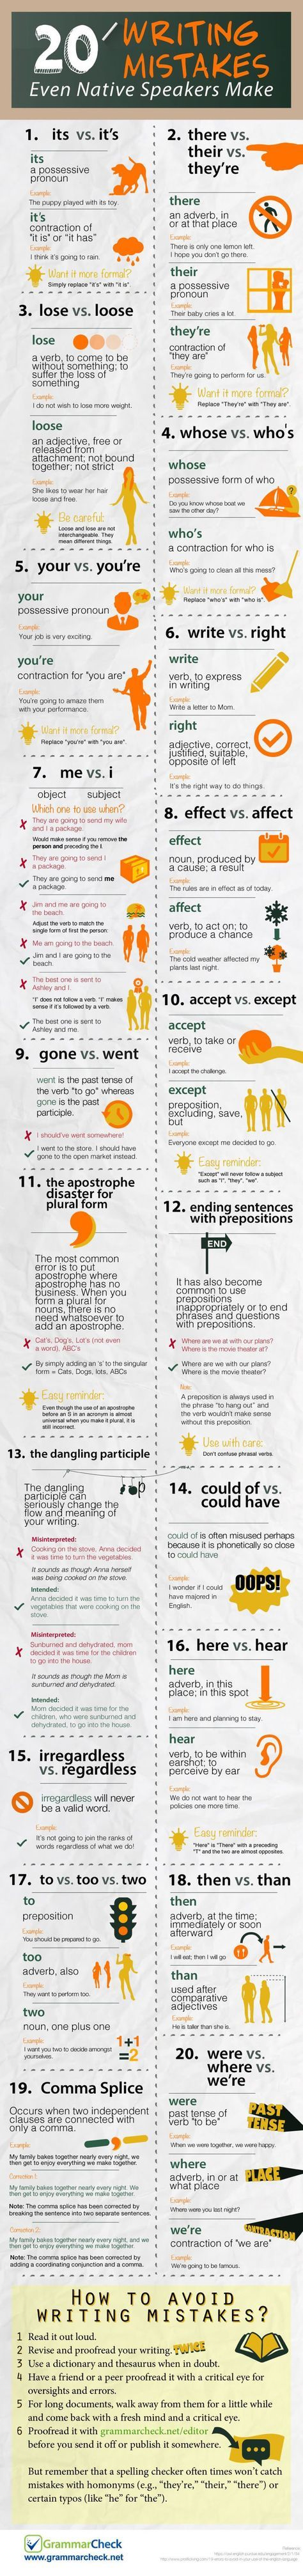 Common writing mistakes and how to avoid them #infographic